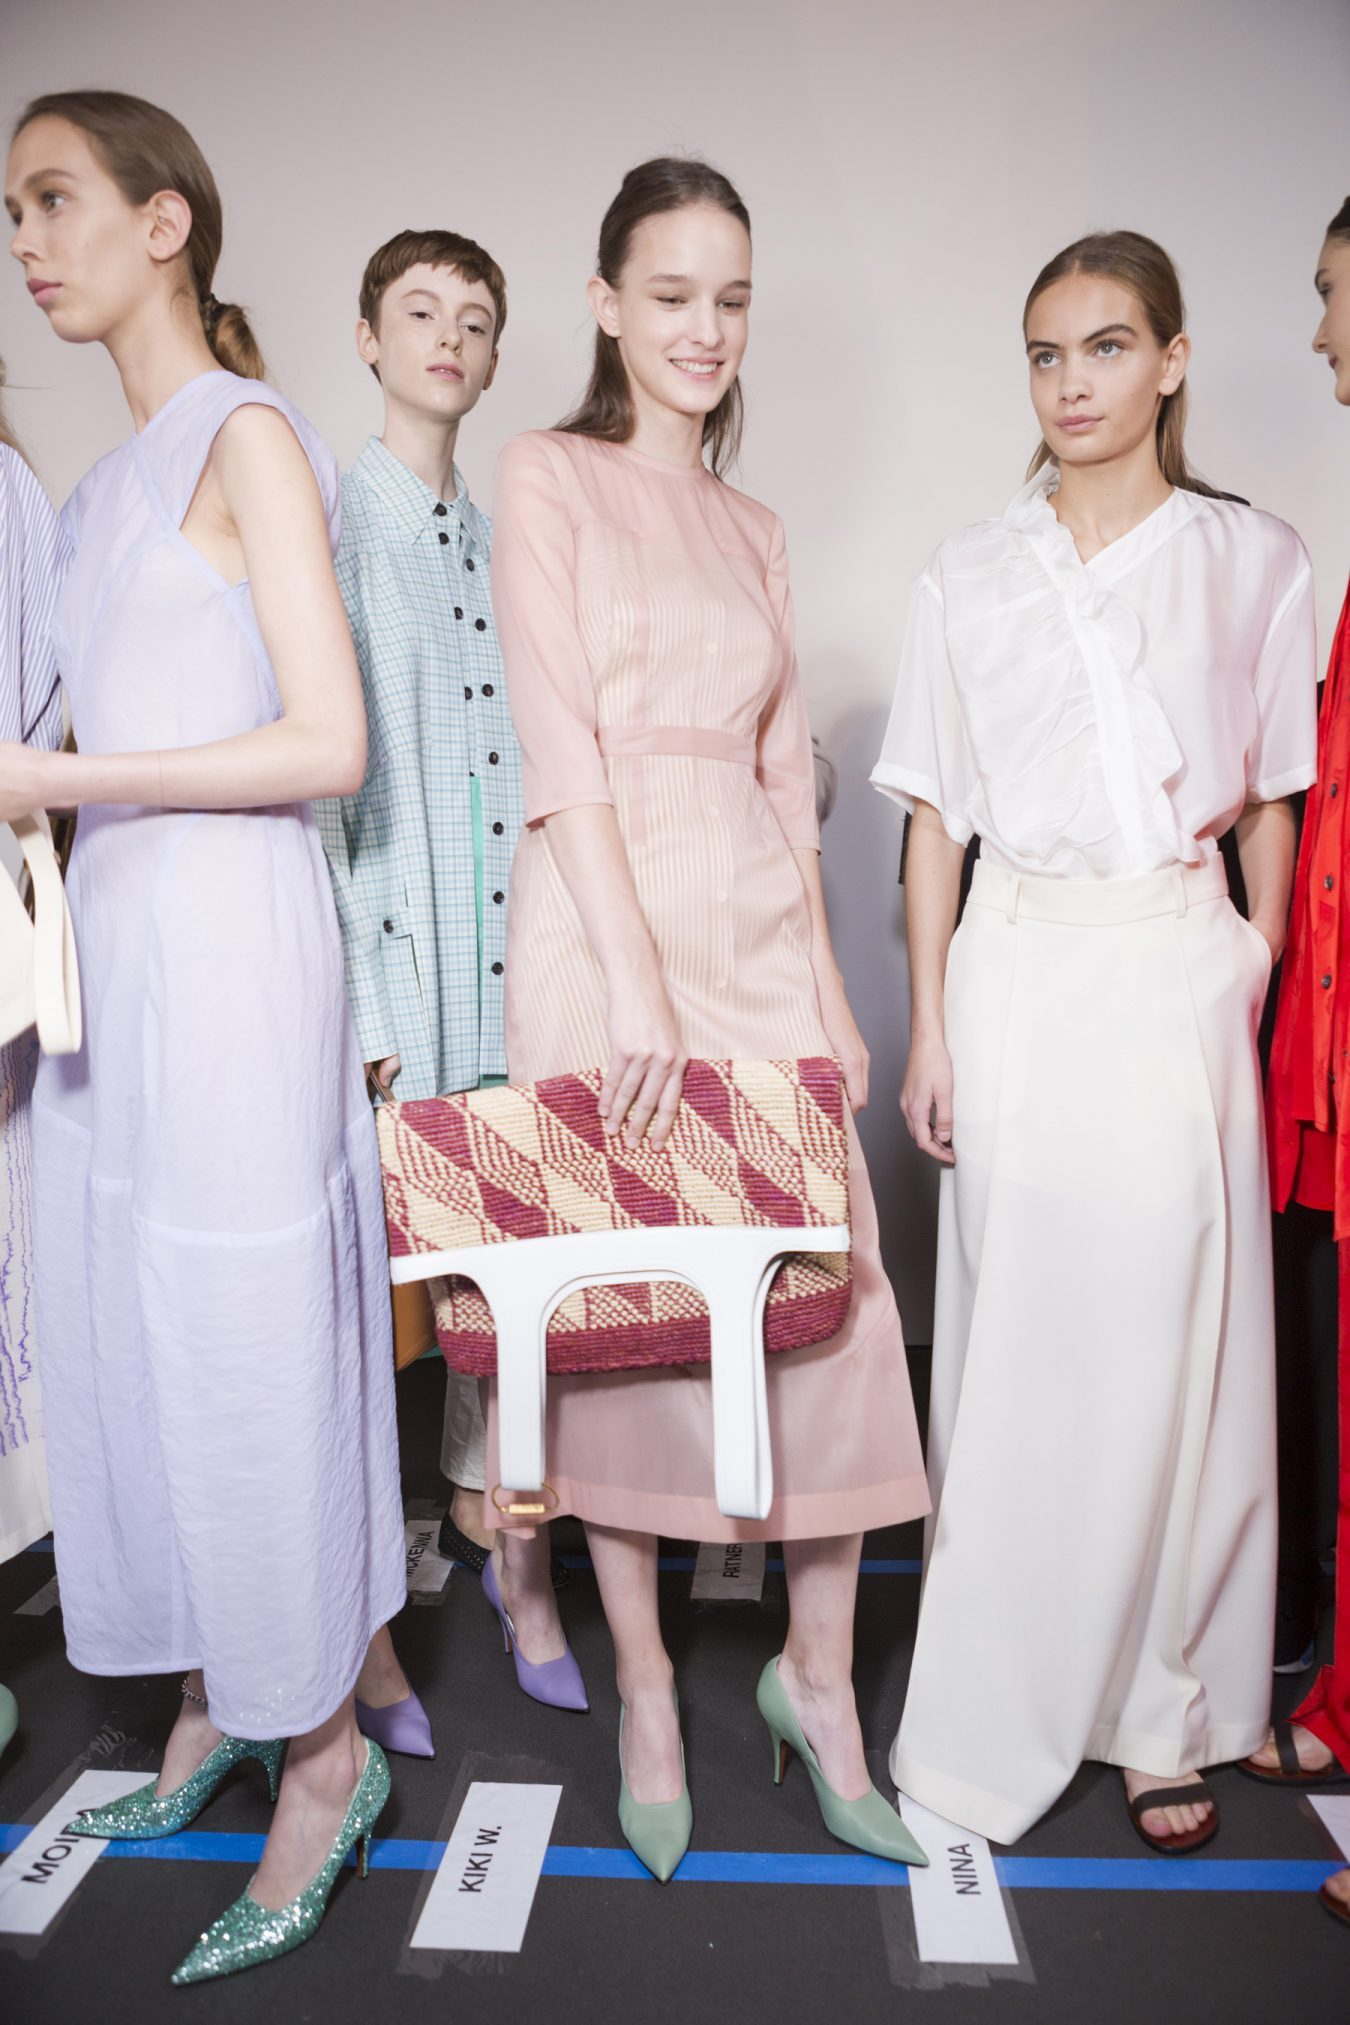 A bill protecting models from sexual harassment has gained momentum in the US, where models are exempt from employee anti-harassment laws due to their independent contractor legal status.